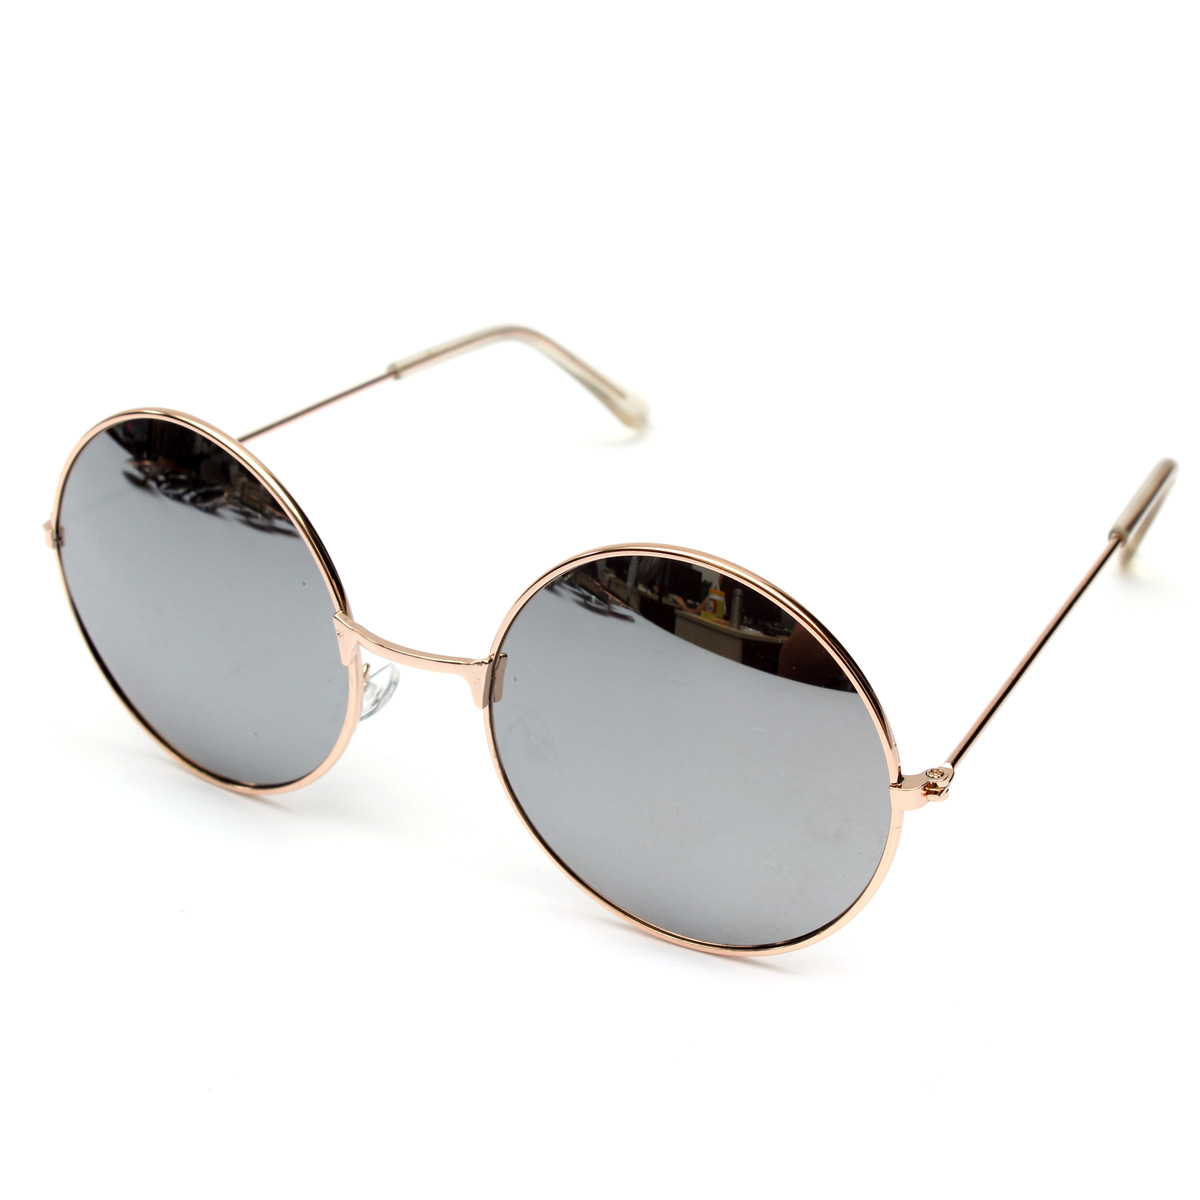 Retro Vintage Men Women Big Round Metal Frame Sunglasses ...